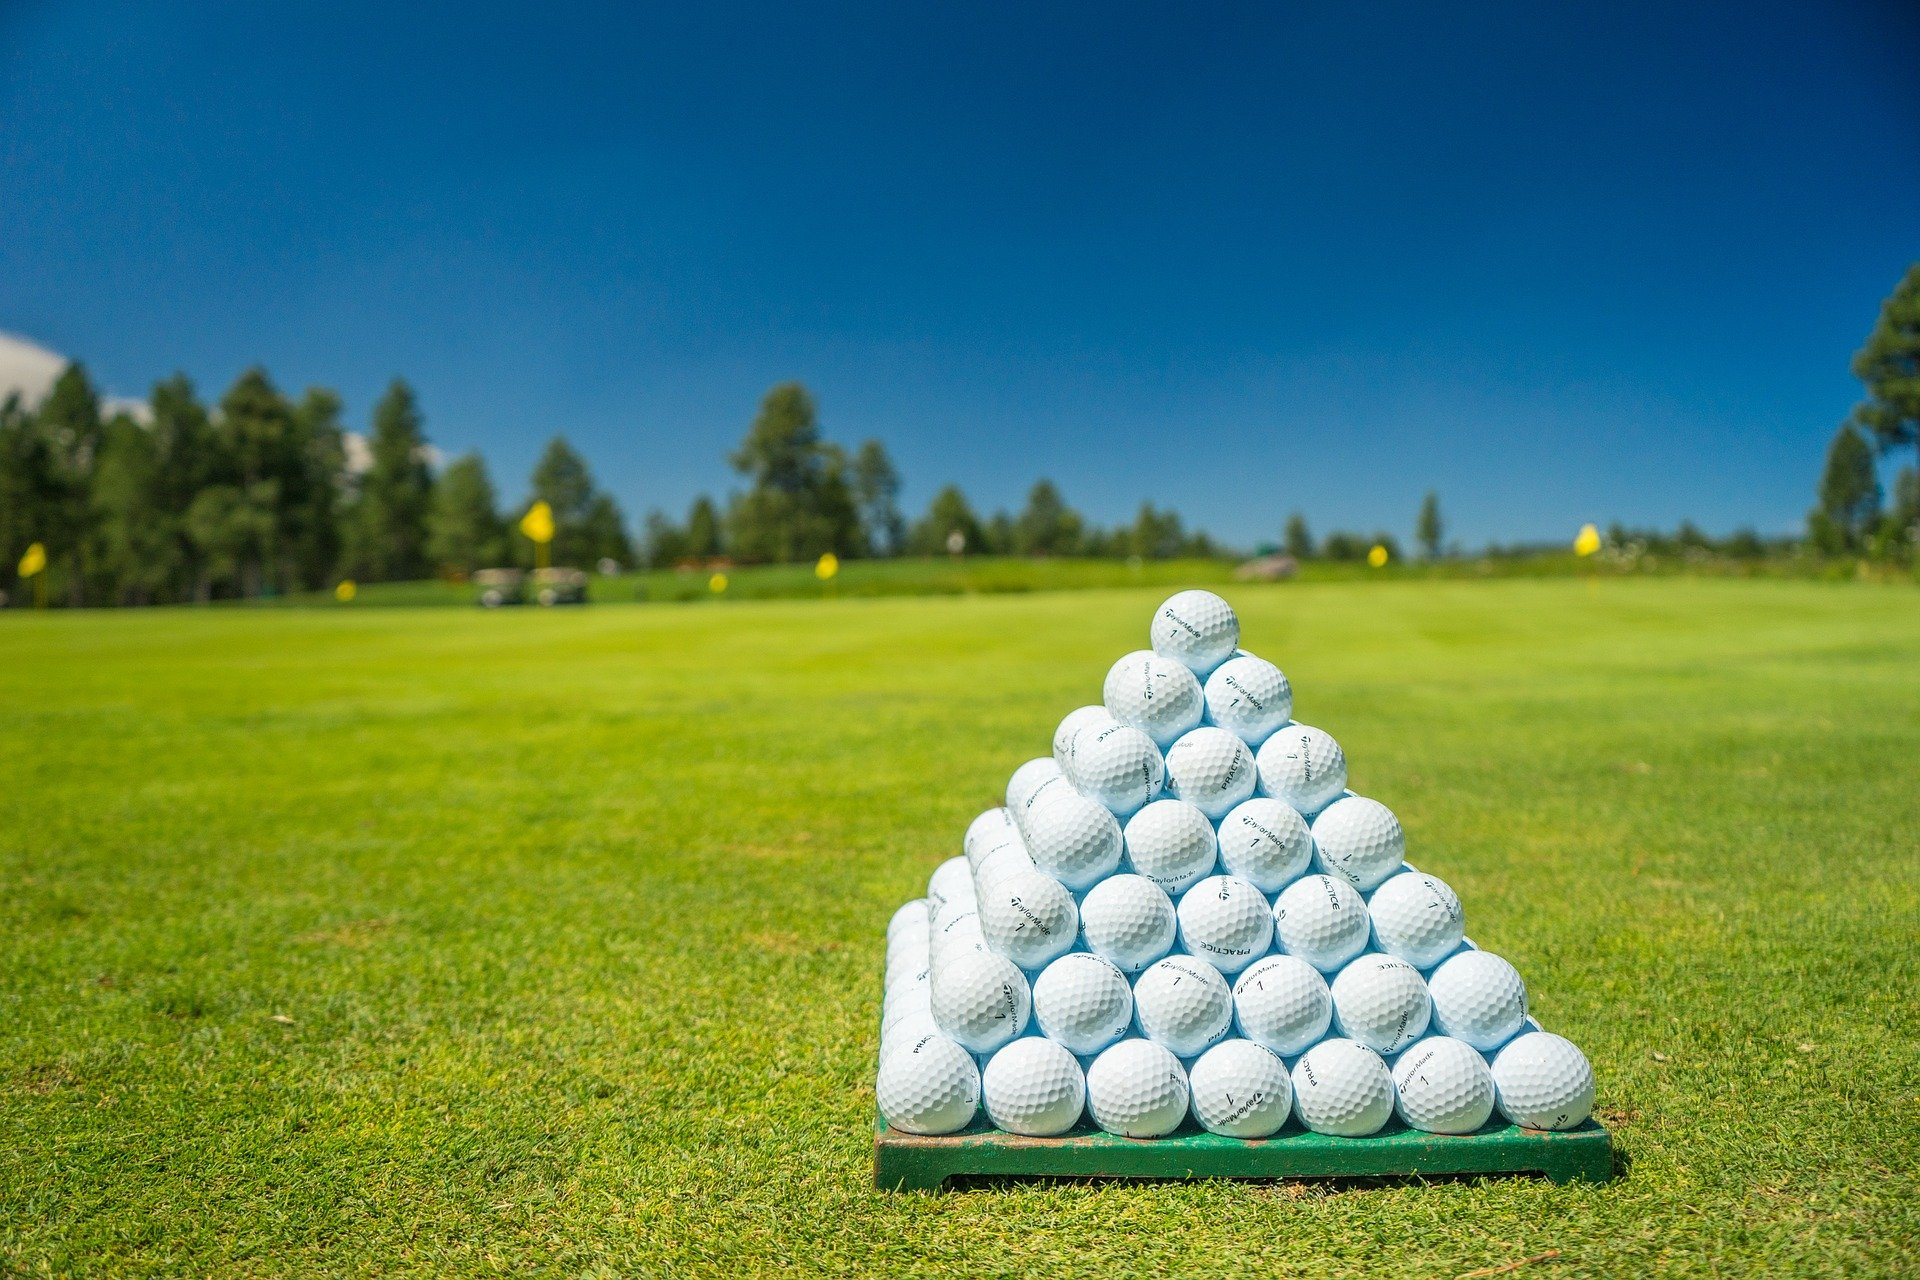 Rent Like A Champion now connects professional golfers with local hosts! Here's how...